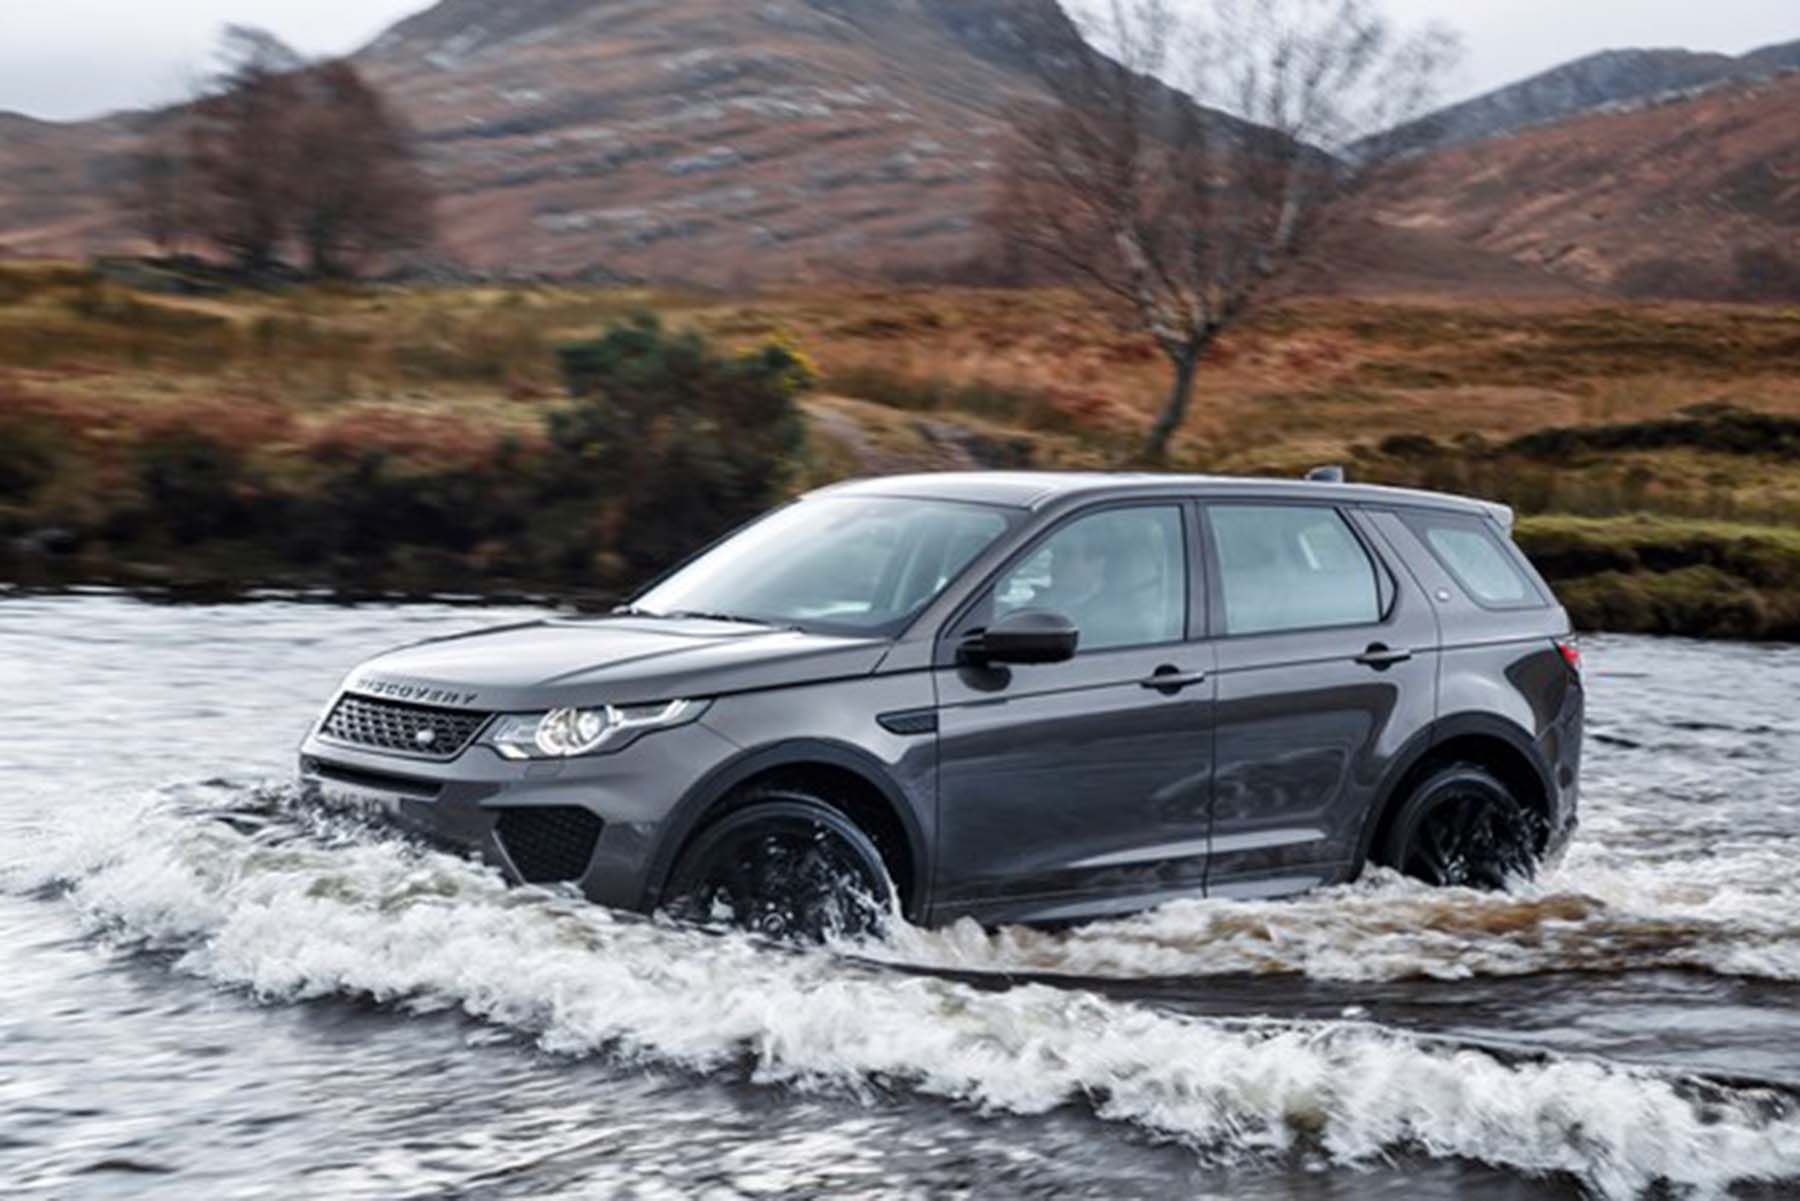 BUYERS GUIDE TO LAND ROVER MODELS Land Rover Discovery